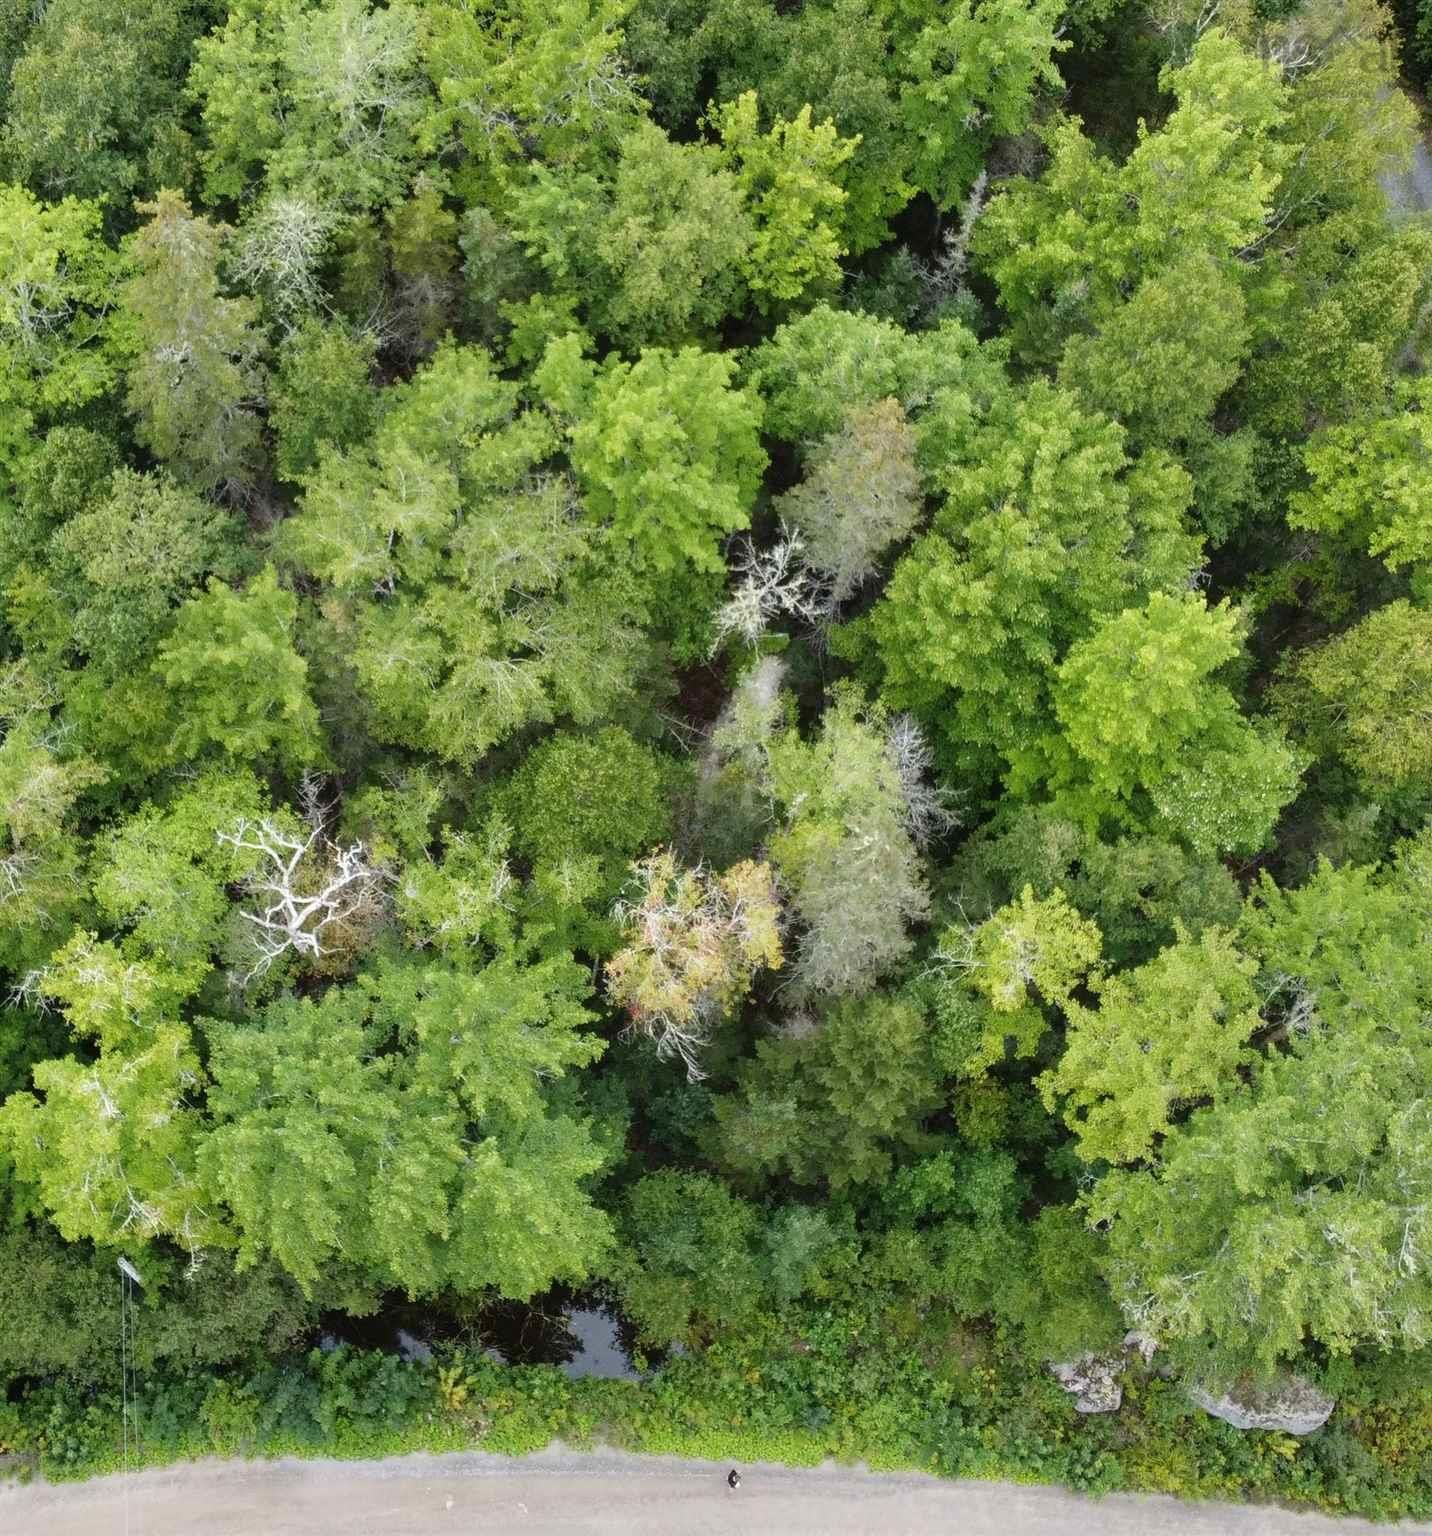 Main Photo: Lot 128 Pioneer Drive in Vaughan: 403-Hants County Vacant Land for sale (Annapolis Valley)  : MLS®# 202123784